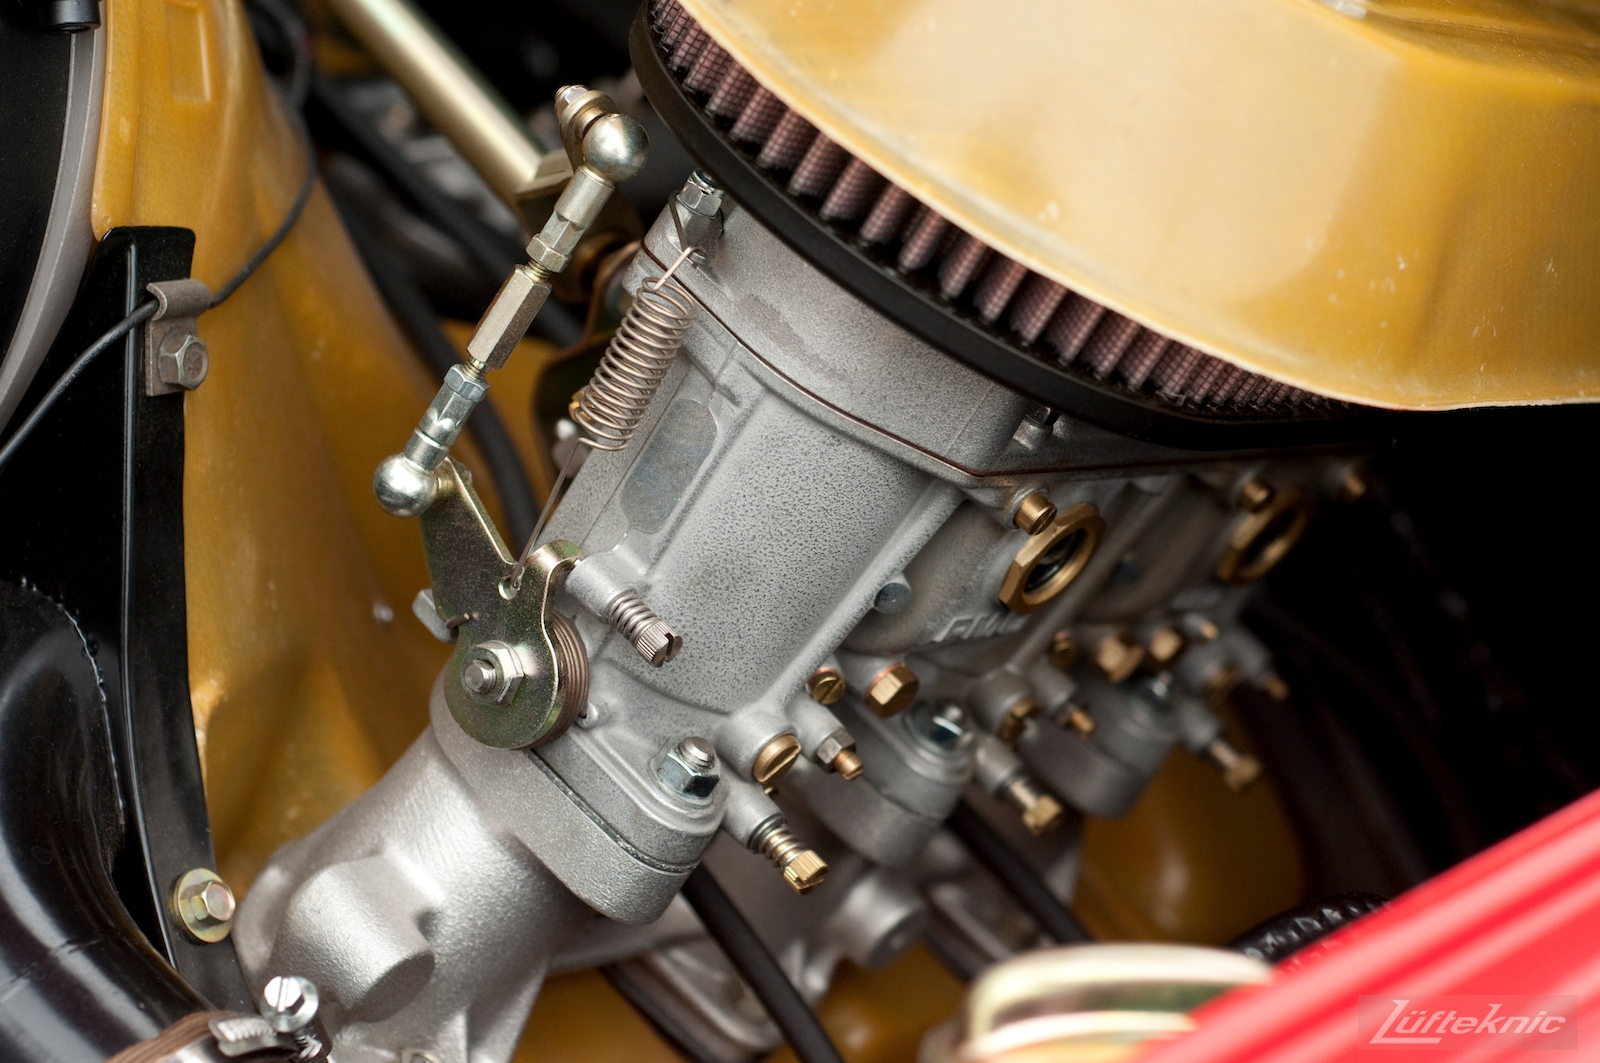 A close up picture of PMA carburetors and gold covers.